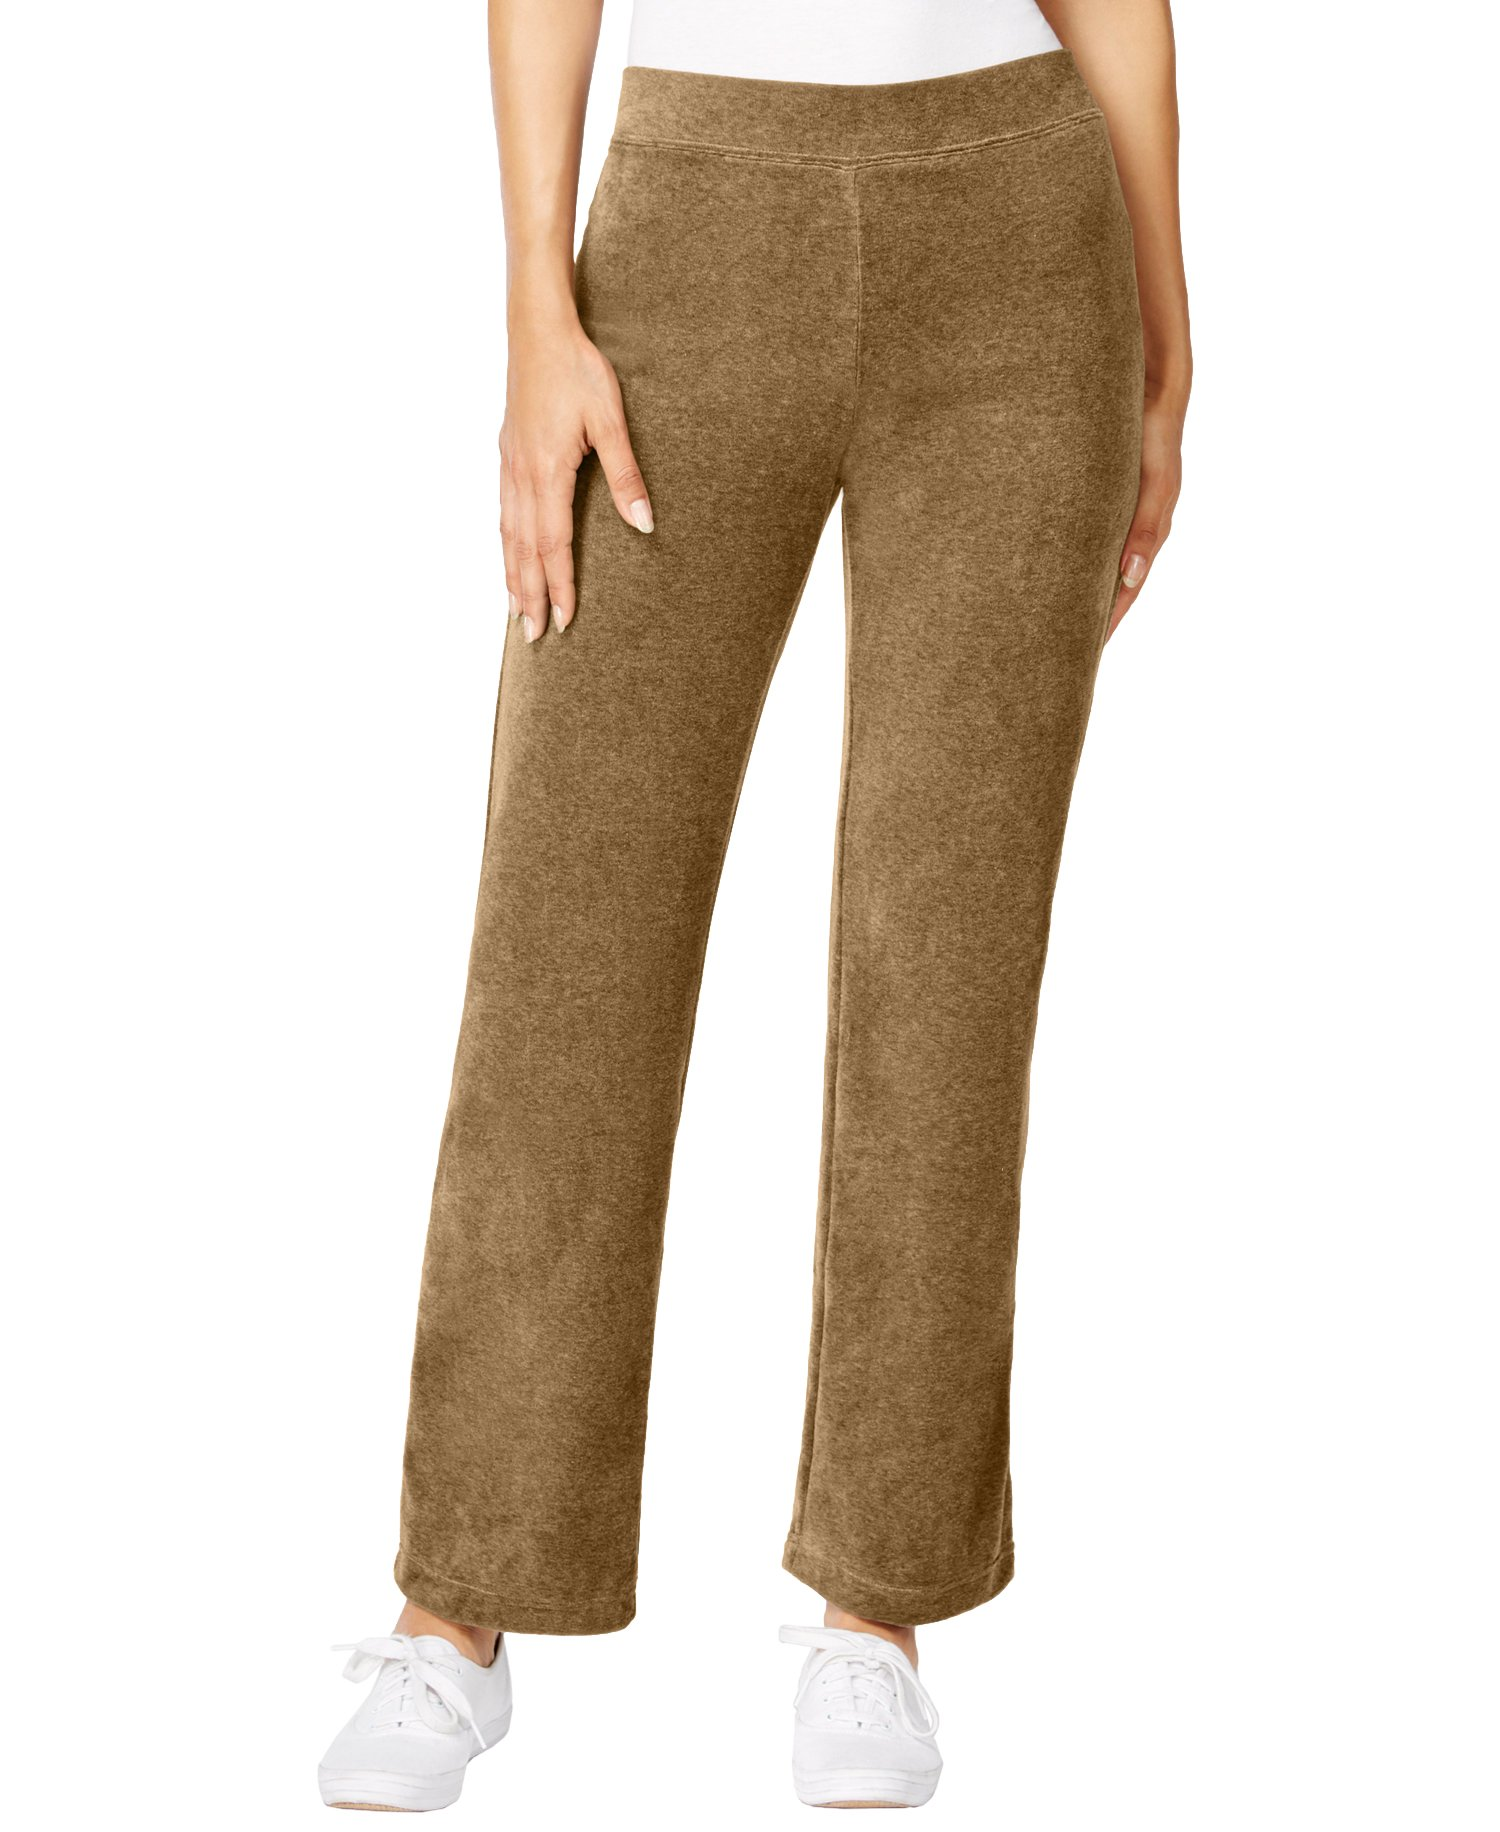 Style & Co. Women's Petite Pull-On Velour Pants (Petite X-Large, Camel Luxe)